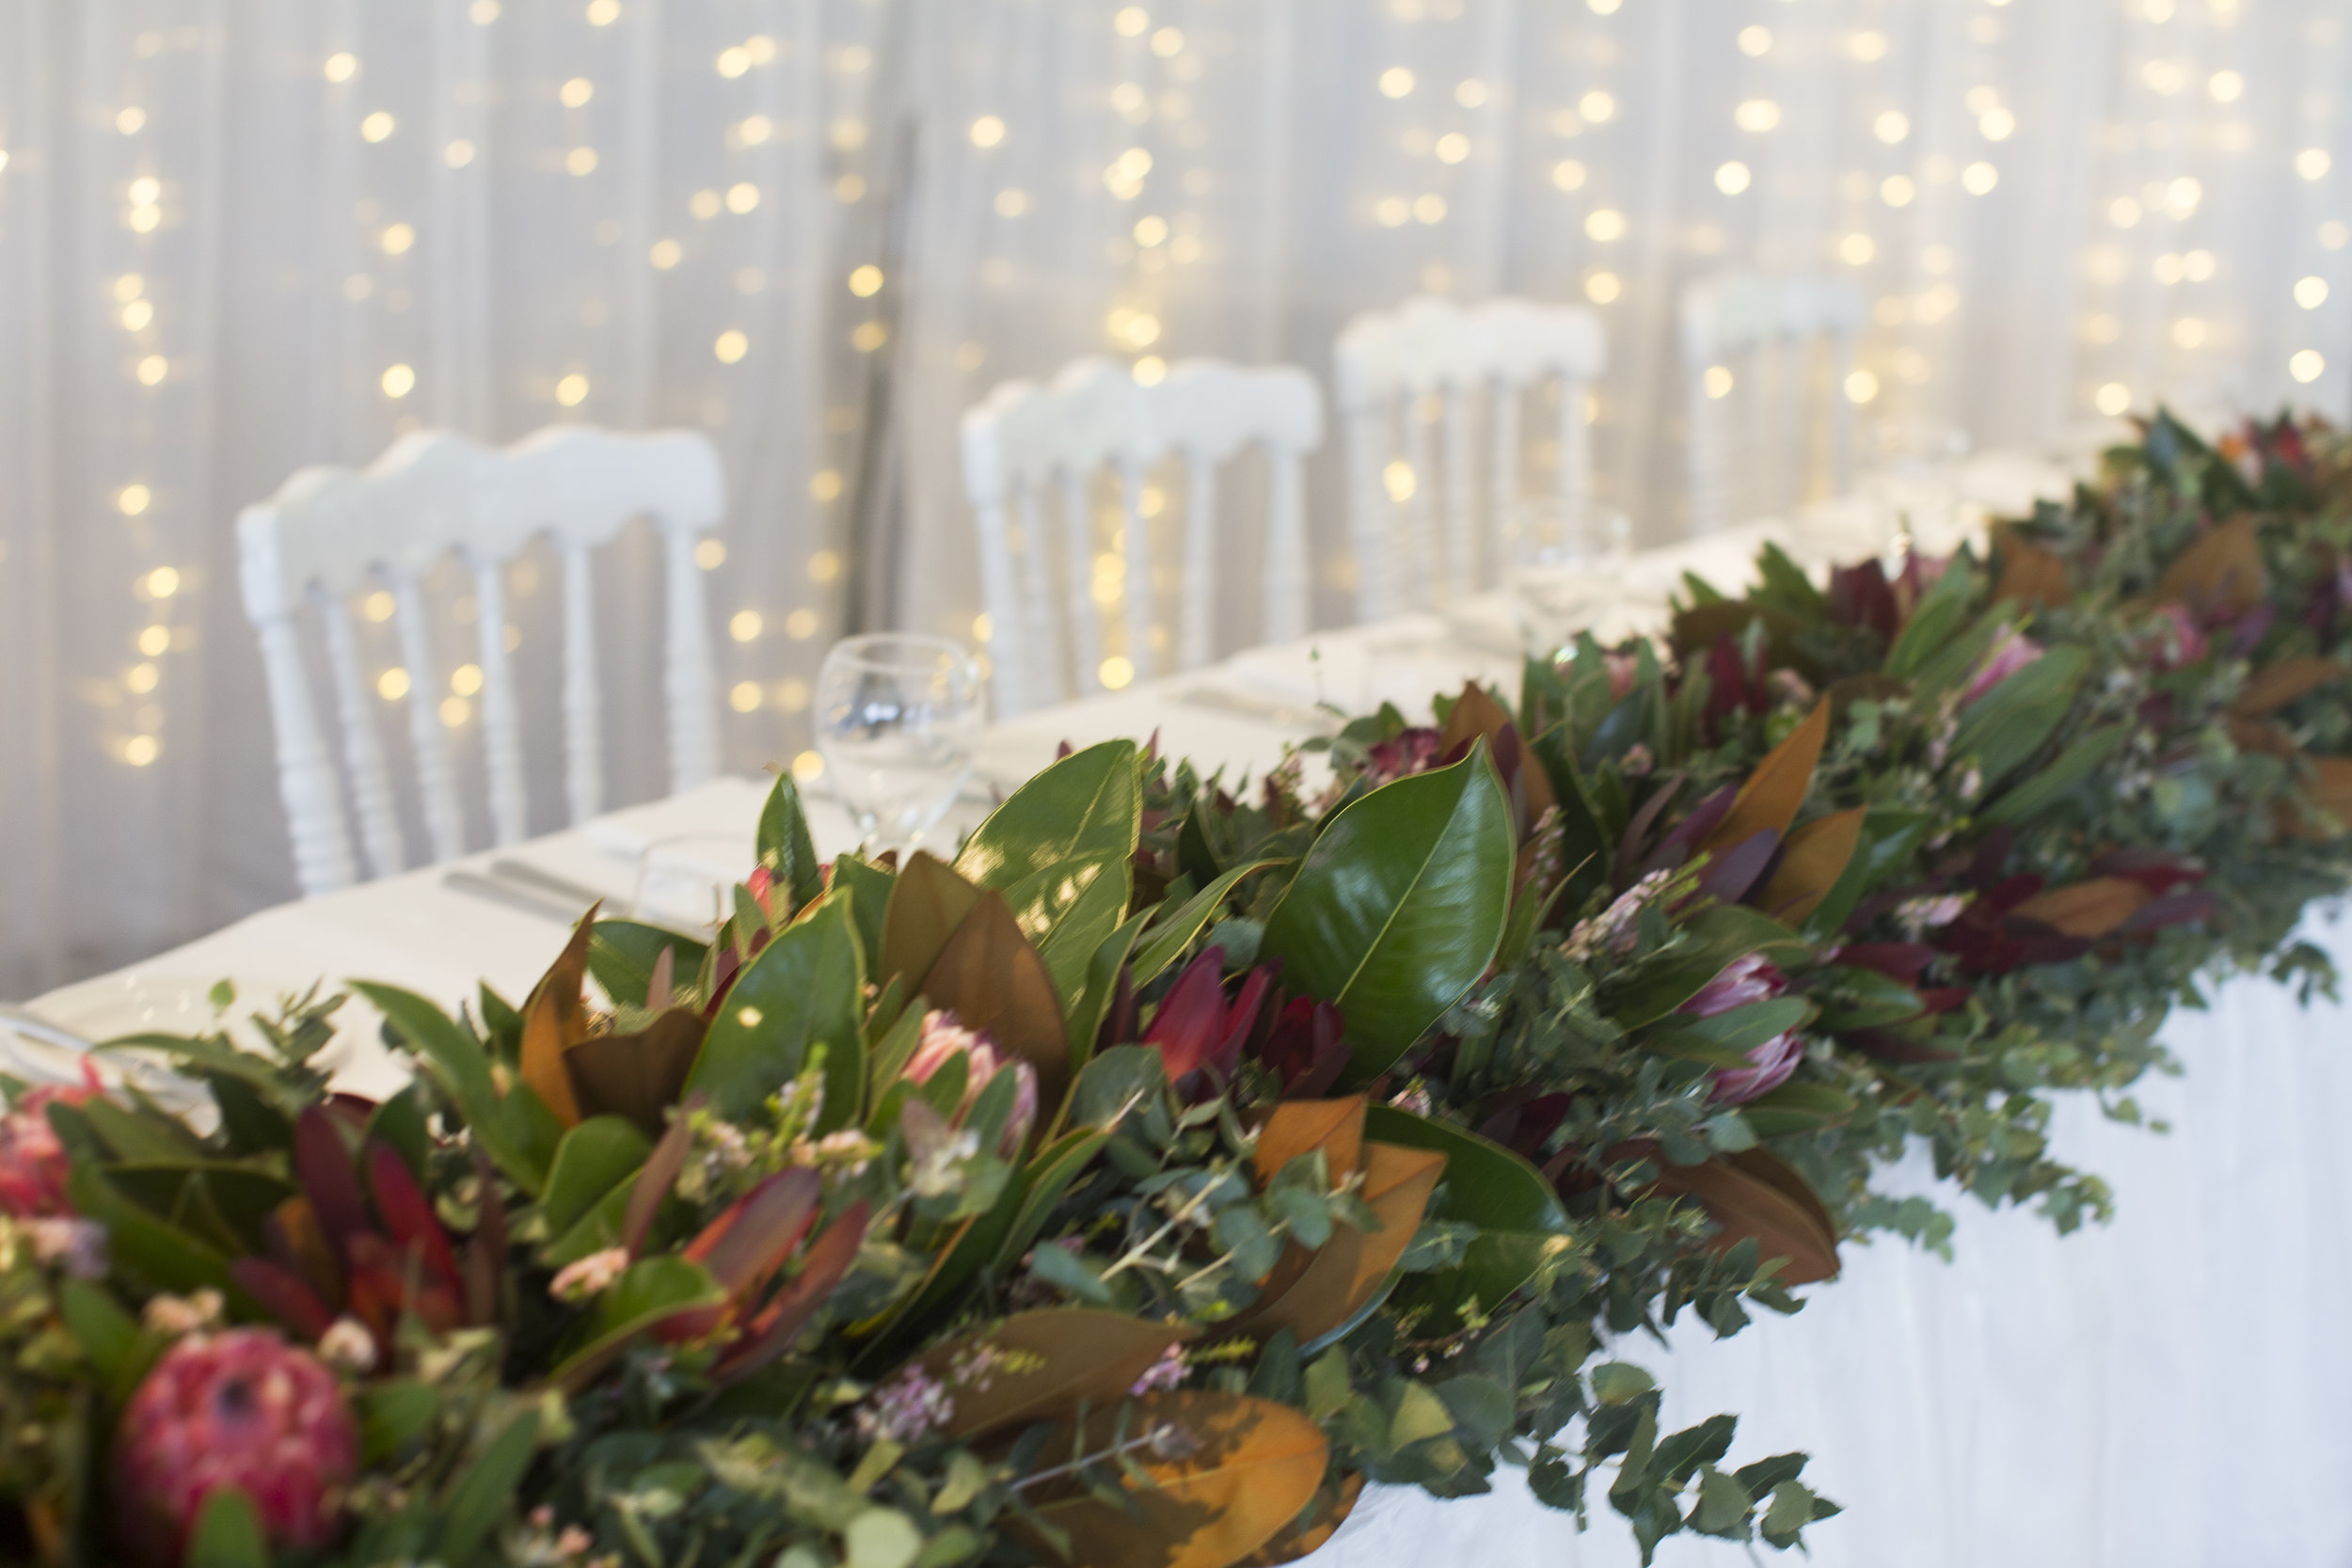 Bridal table flowers long.jpg